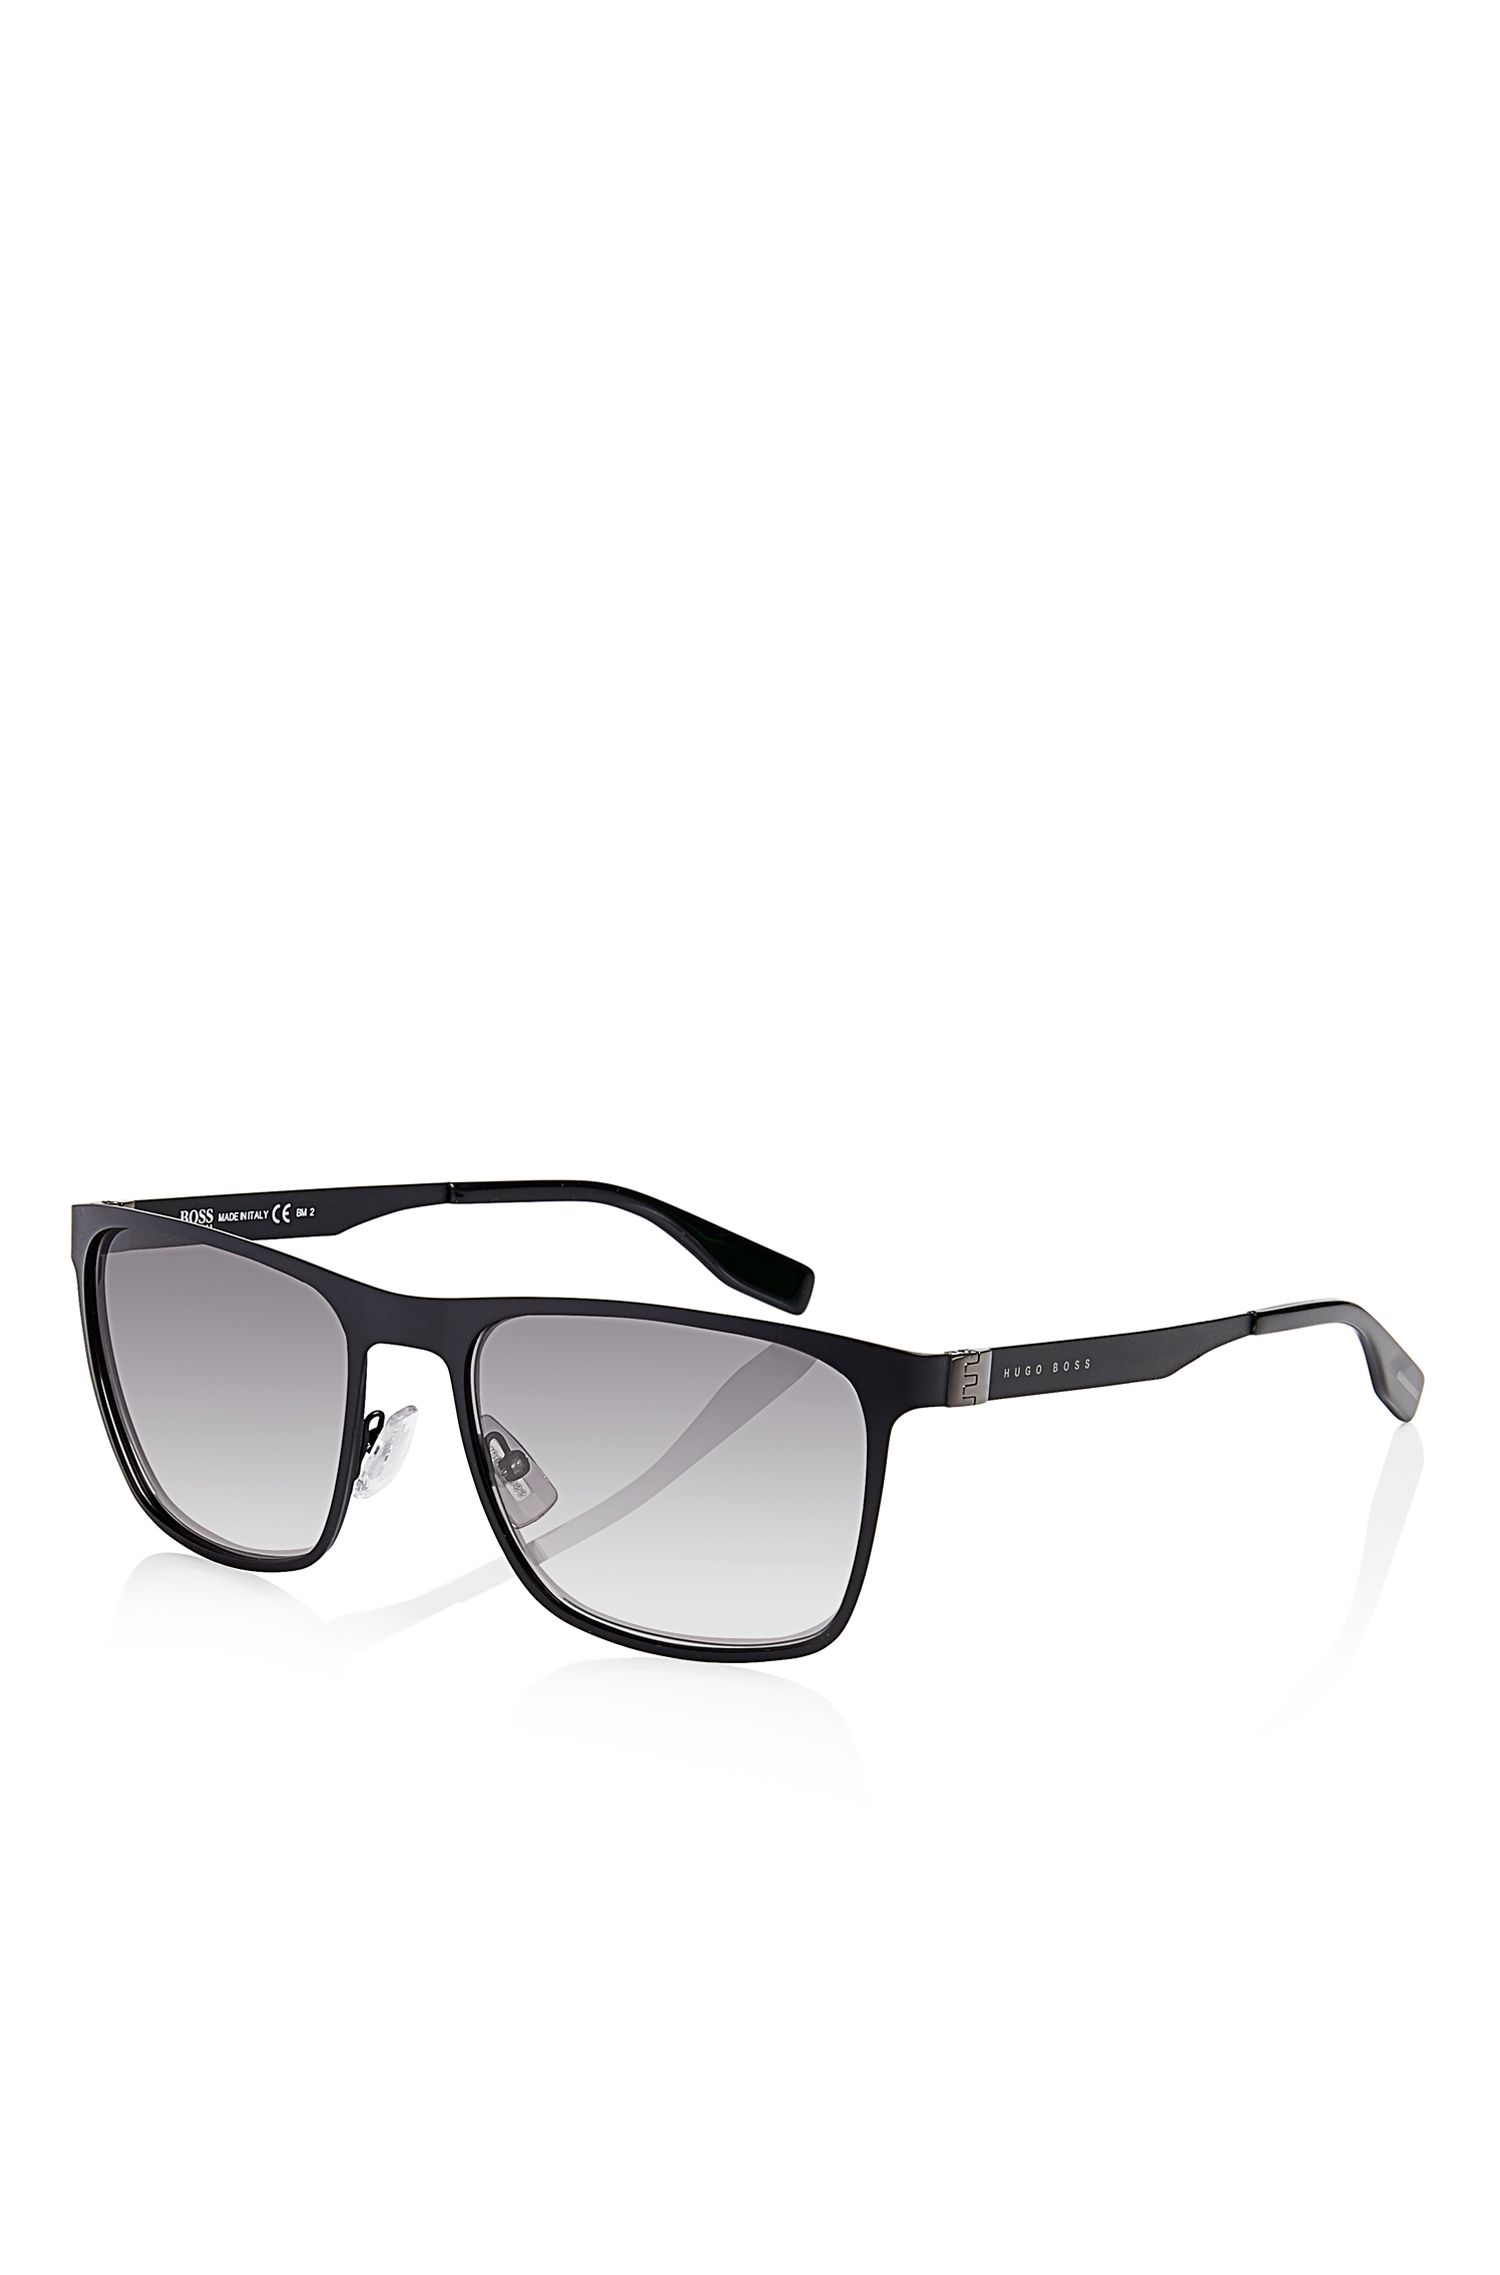 'Sunglasses' | Matte Black Flat Metal Sunglasses